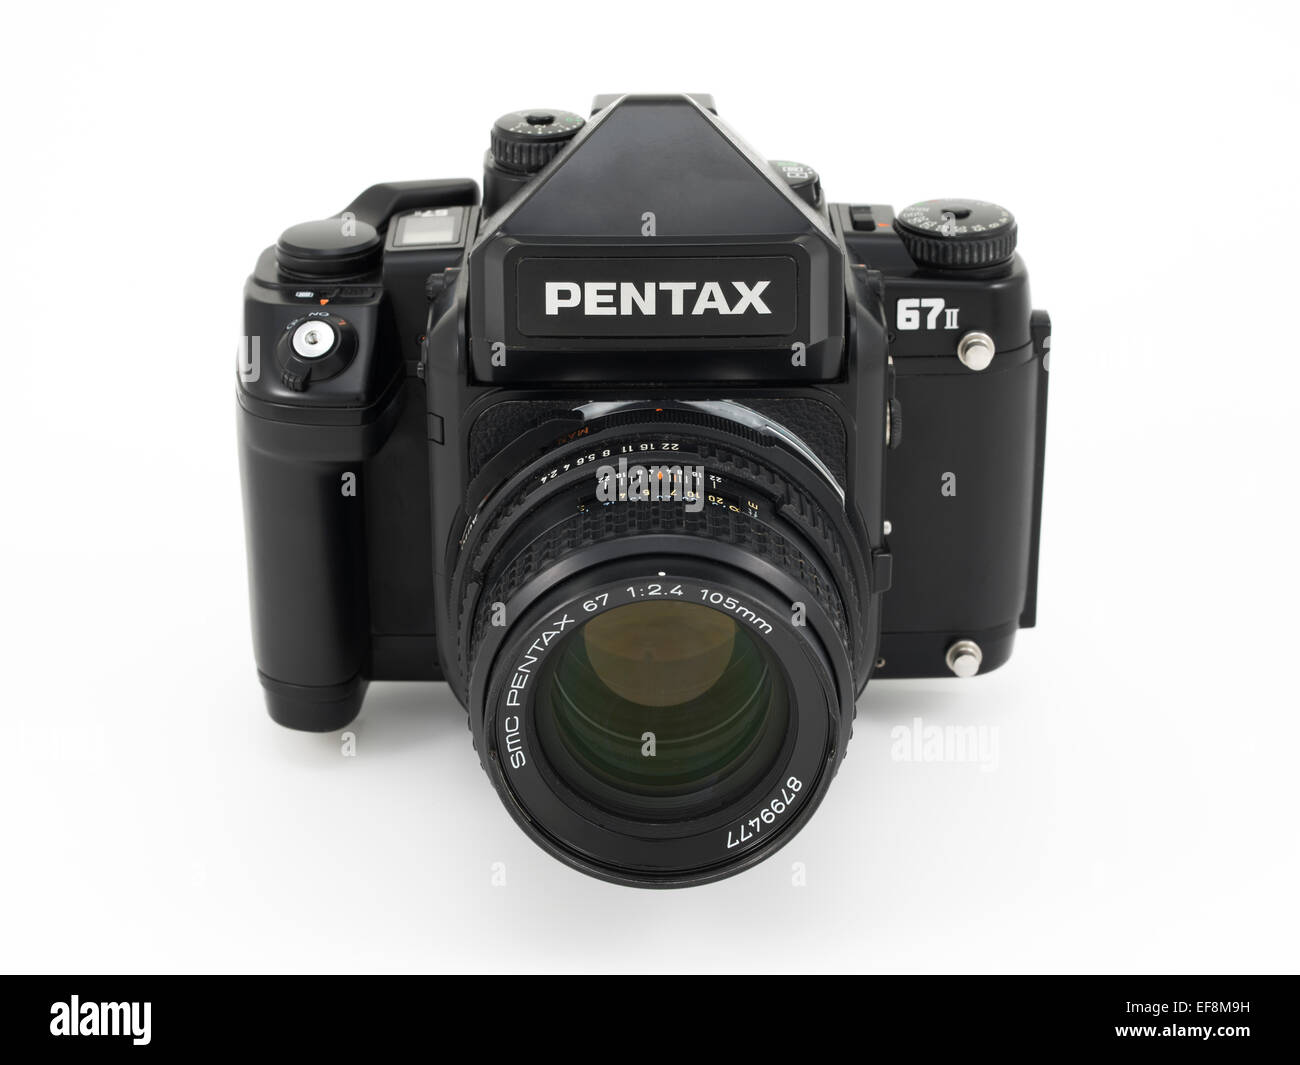 Pentax 67ii 67 6x7 medium format film camera. Popular for analog landscape and travel photography - Stock Image